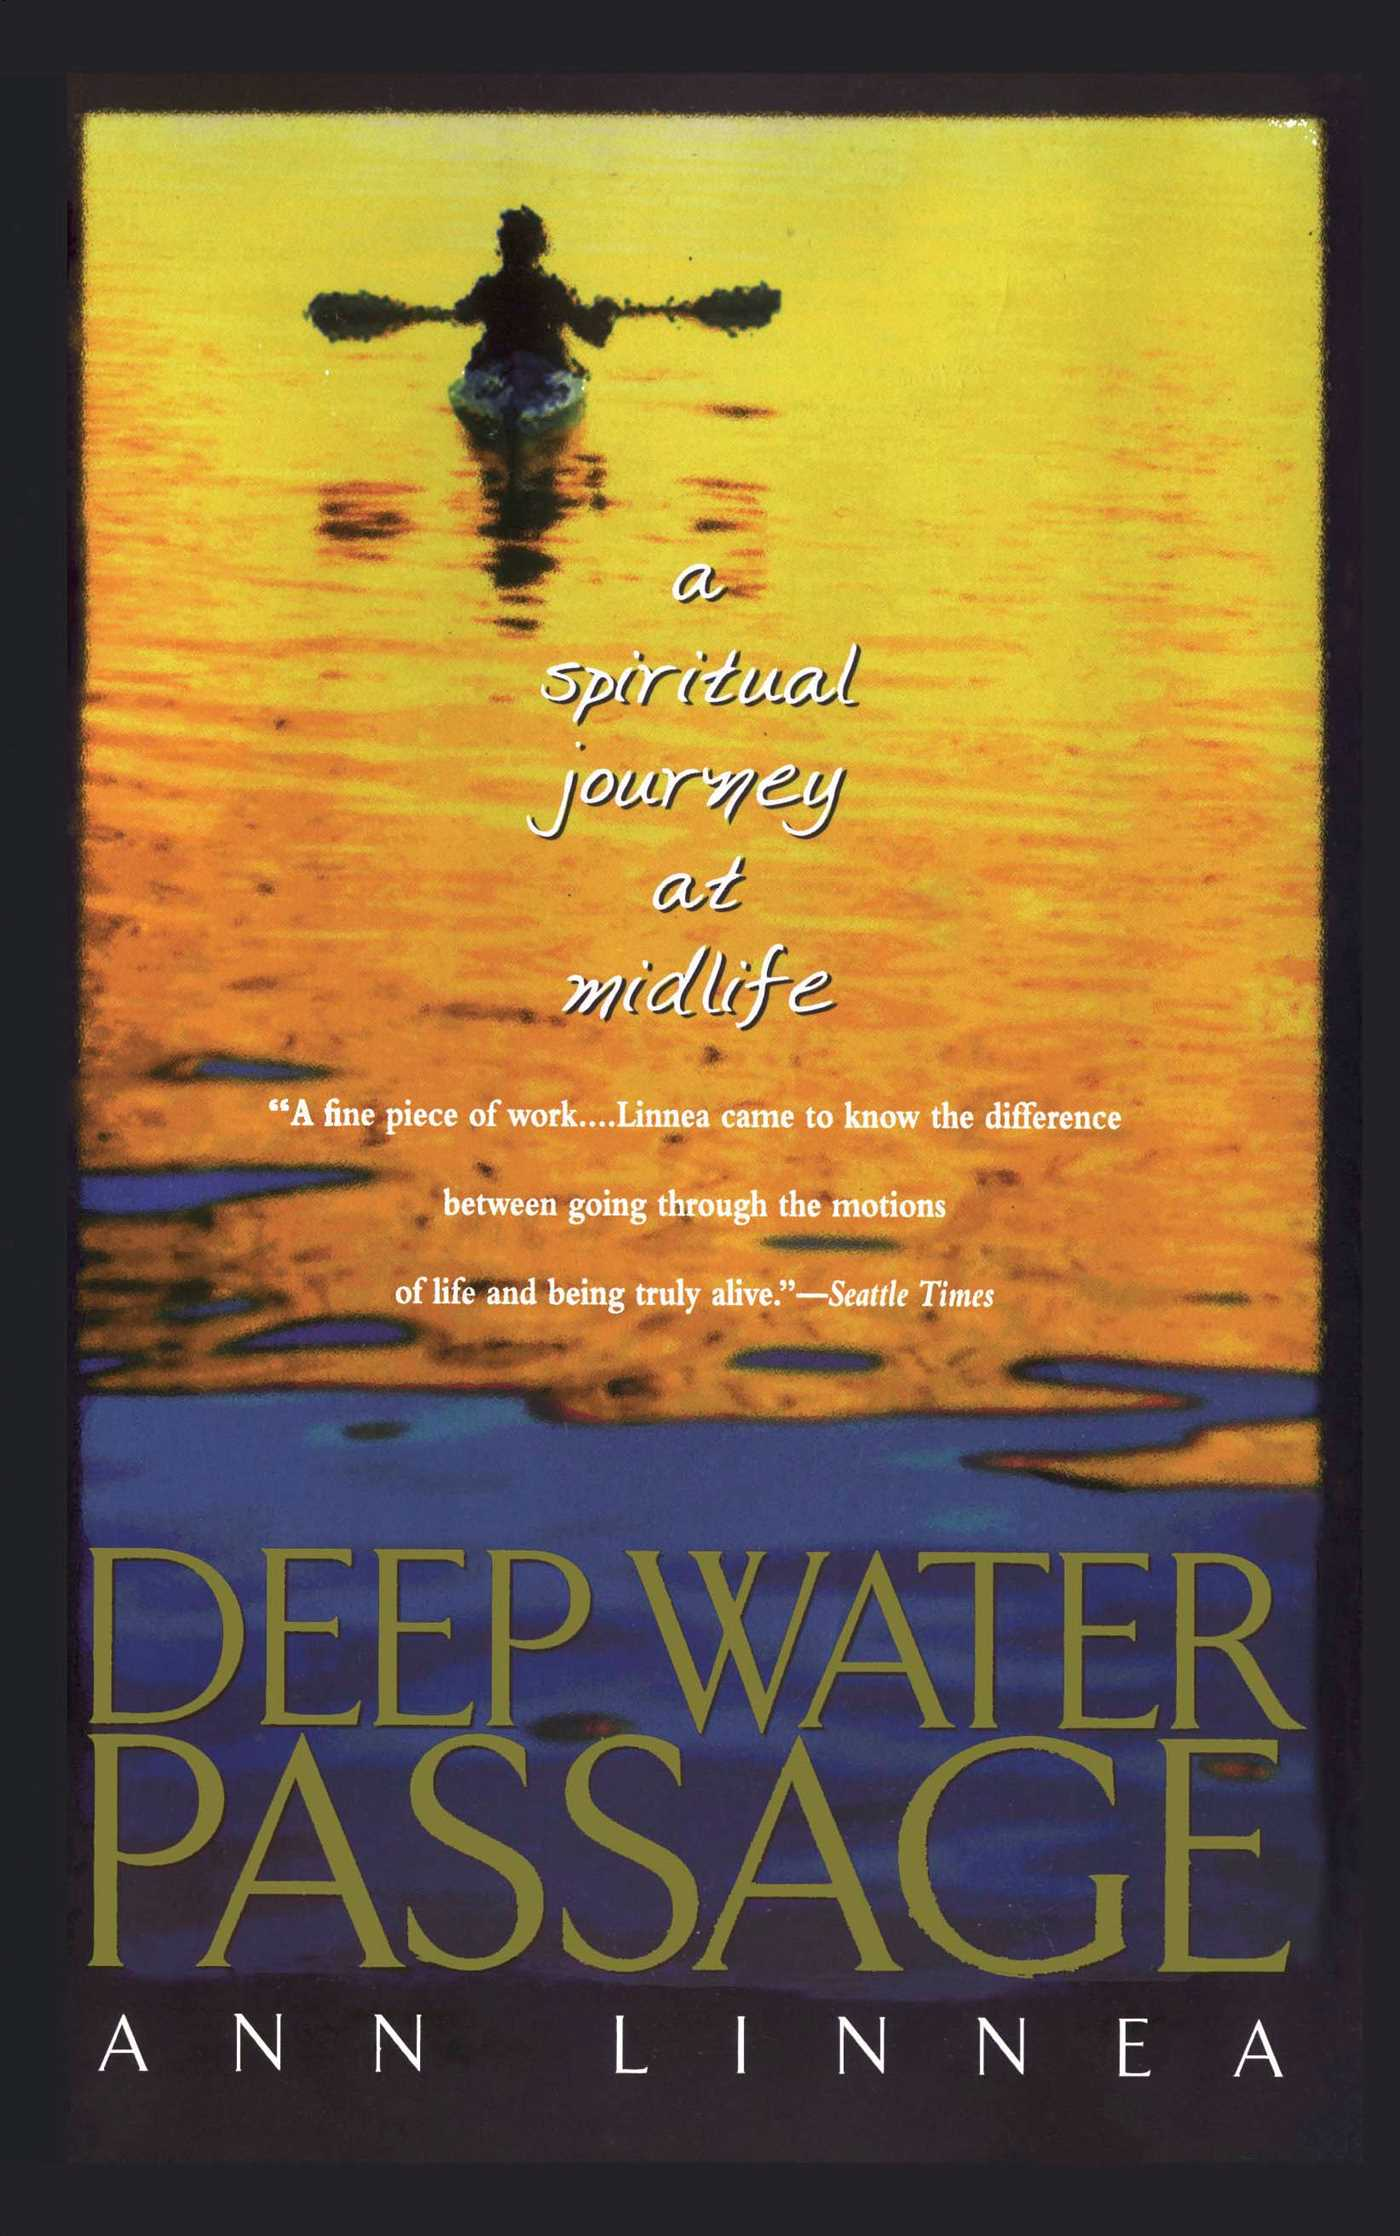 Deep water passage 9780671002824 hr